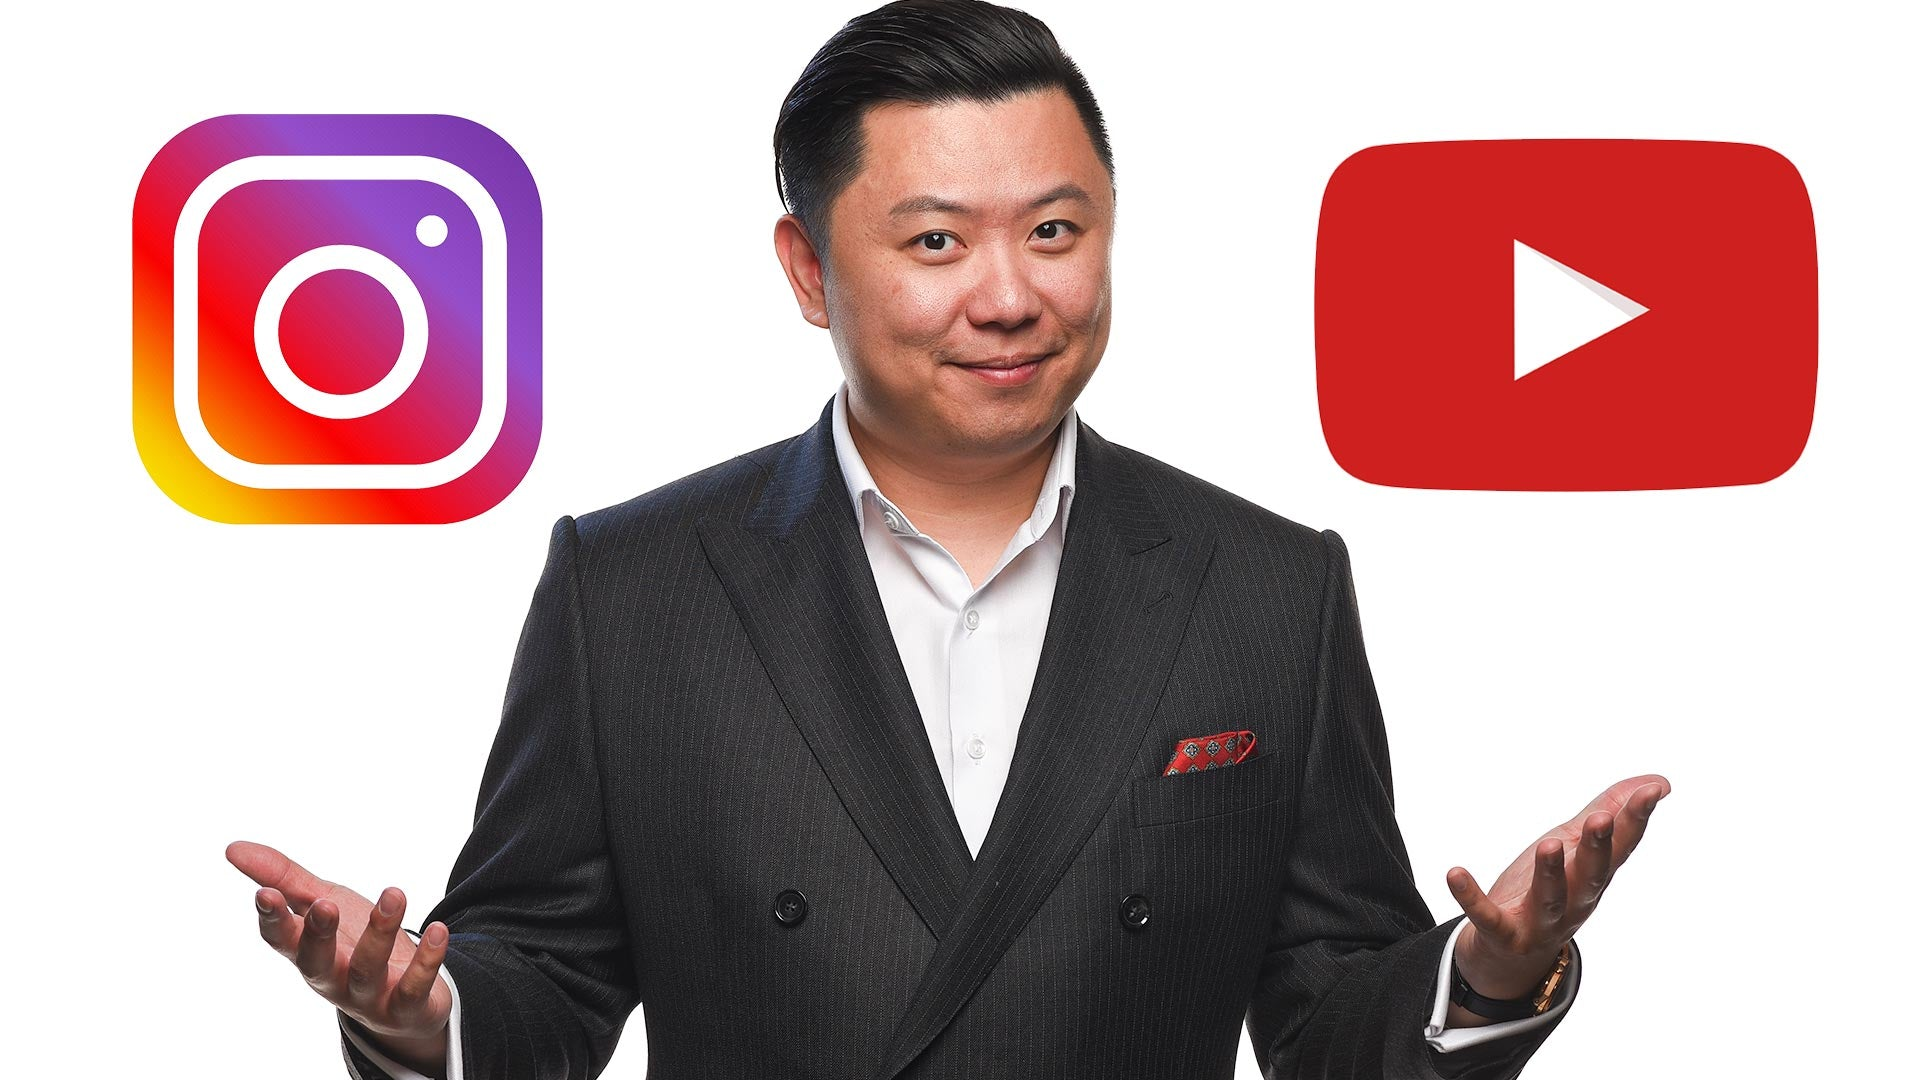 Social Media Training With Dan Lok: Build A Massive Brand Following on Instagram and YouTube